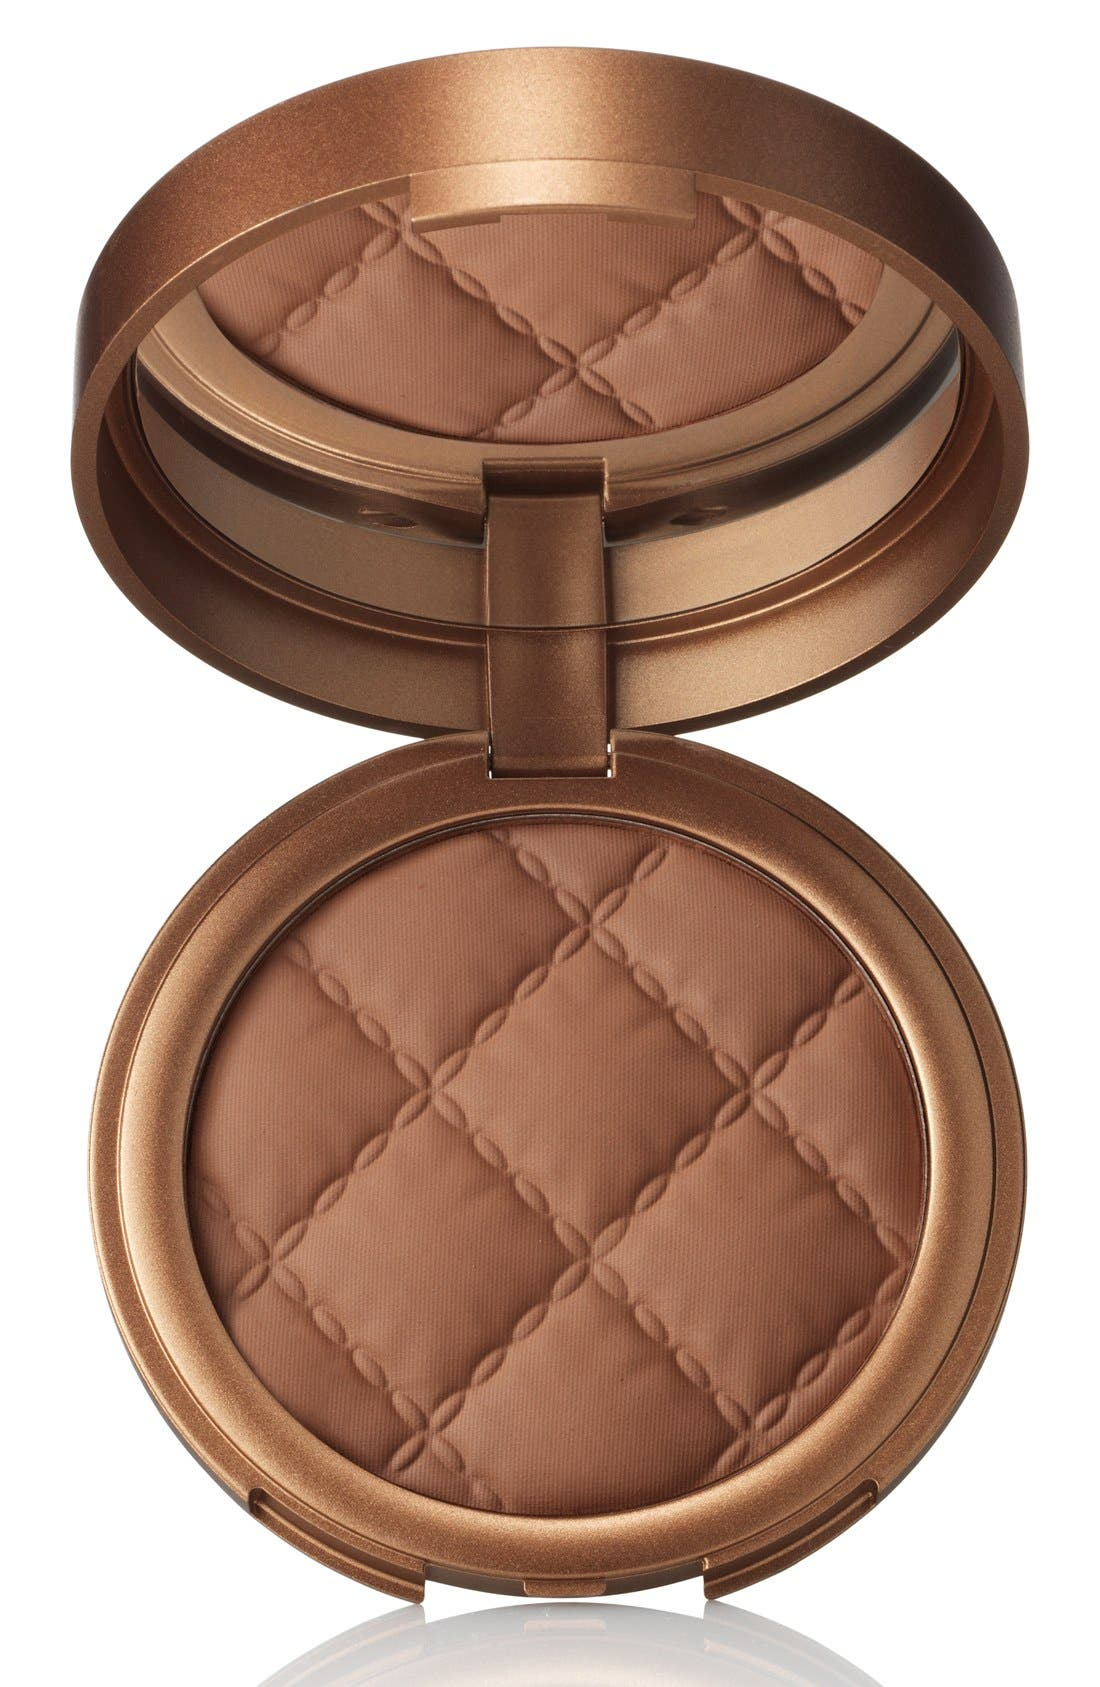 Beach Matte Baked Hydrating Bronzer,                             Main thumbnail 1, color,                             SUNSET DEEP